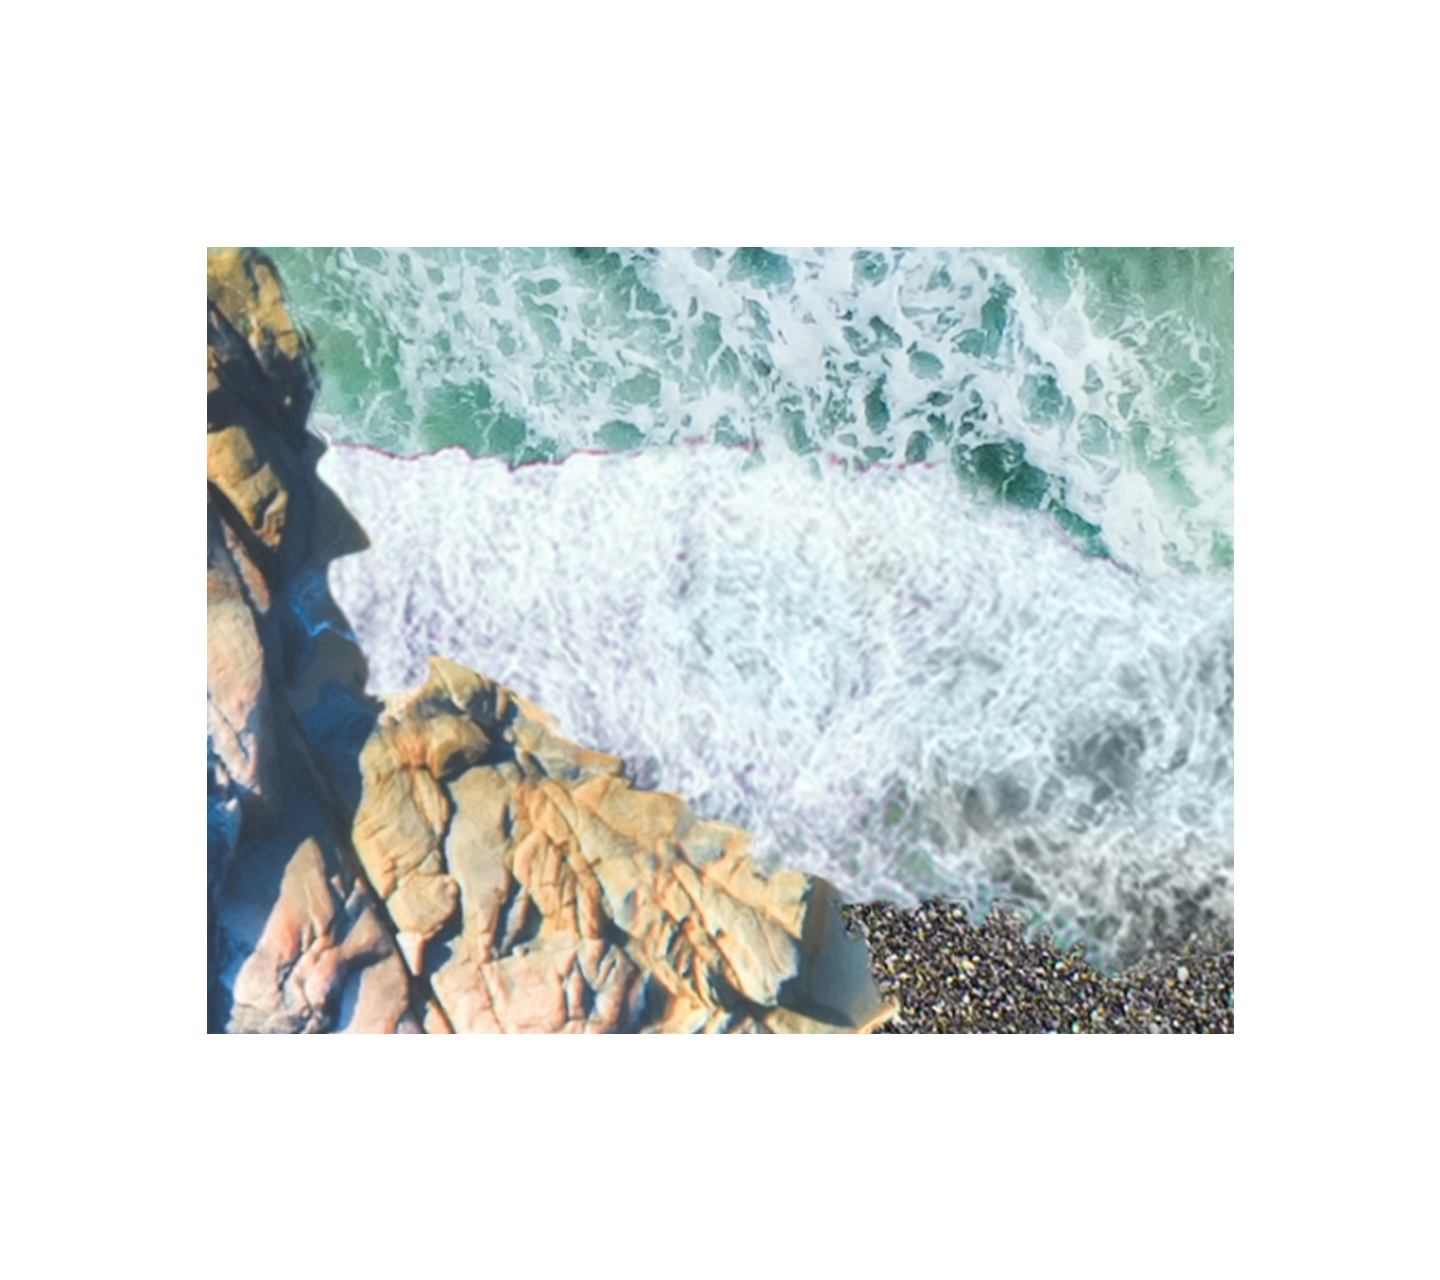 An ocean shore with white waves in motion